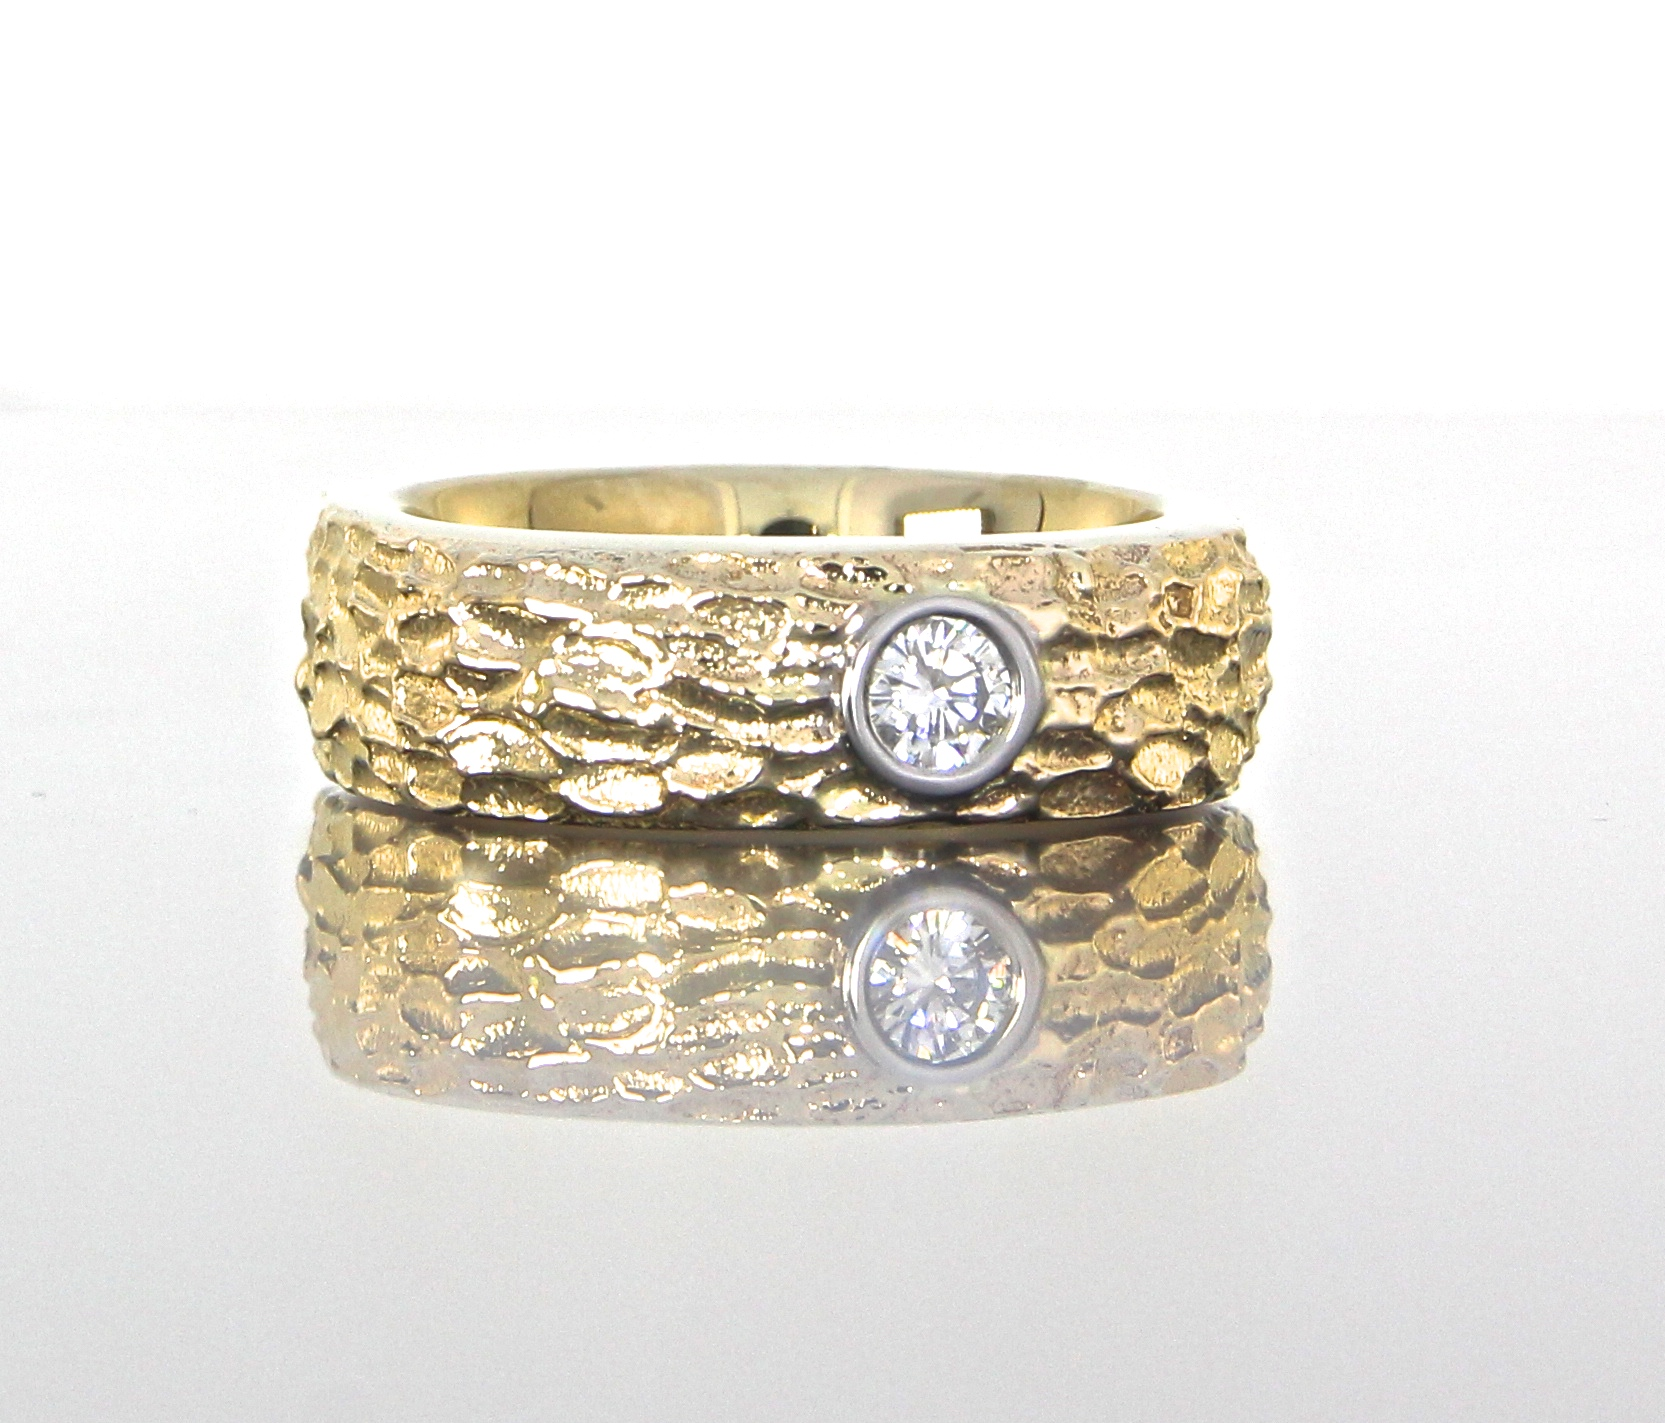 unique-mens-band-textured-wedding-band-yellow-gold-round-diamond-modern-design-craft-revival-jewelry-store-grand-rapids